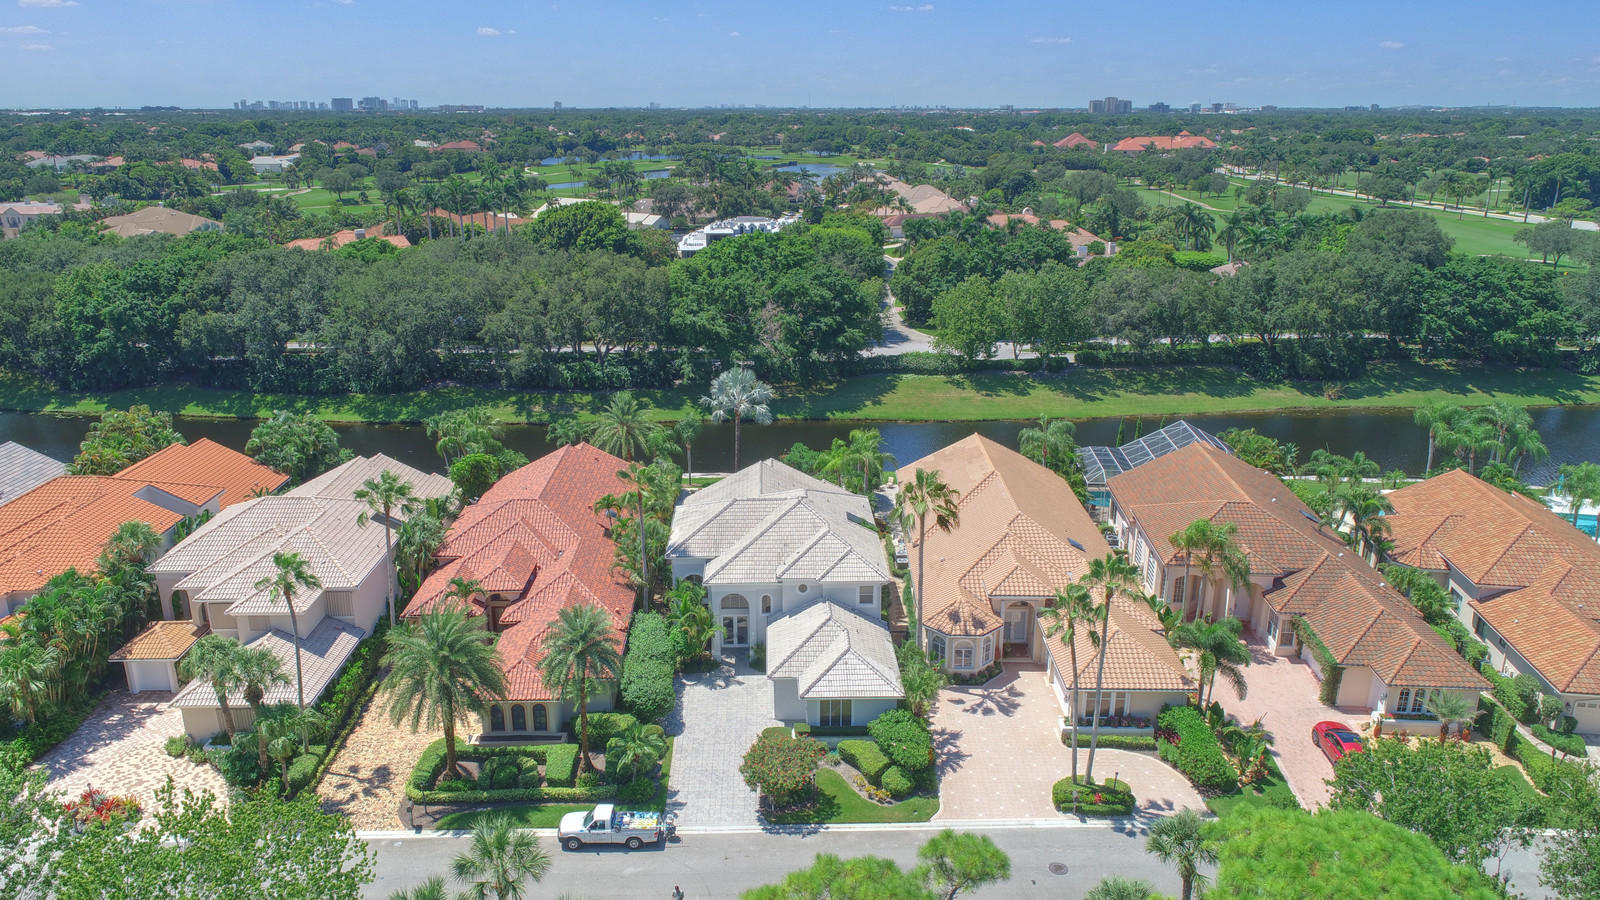 3366 Degas Drive, Palm Beach Gardens, Florida 33410, 3 Bedrooms Bedrooms, ,4.1 BathroomsBathrooms,A,Single family,Degas,RX-10454277